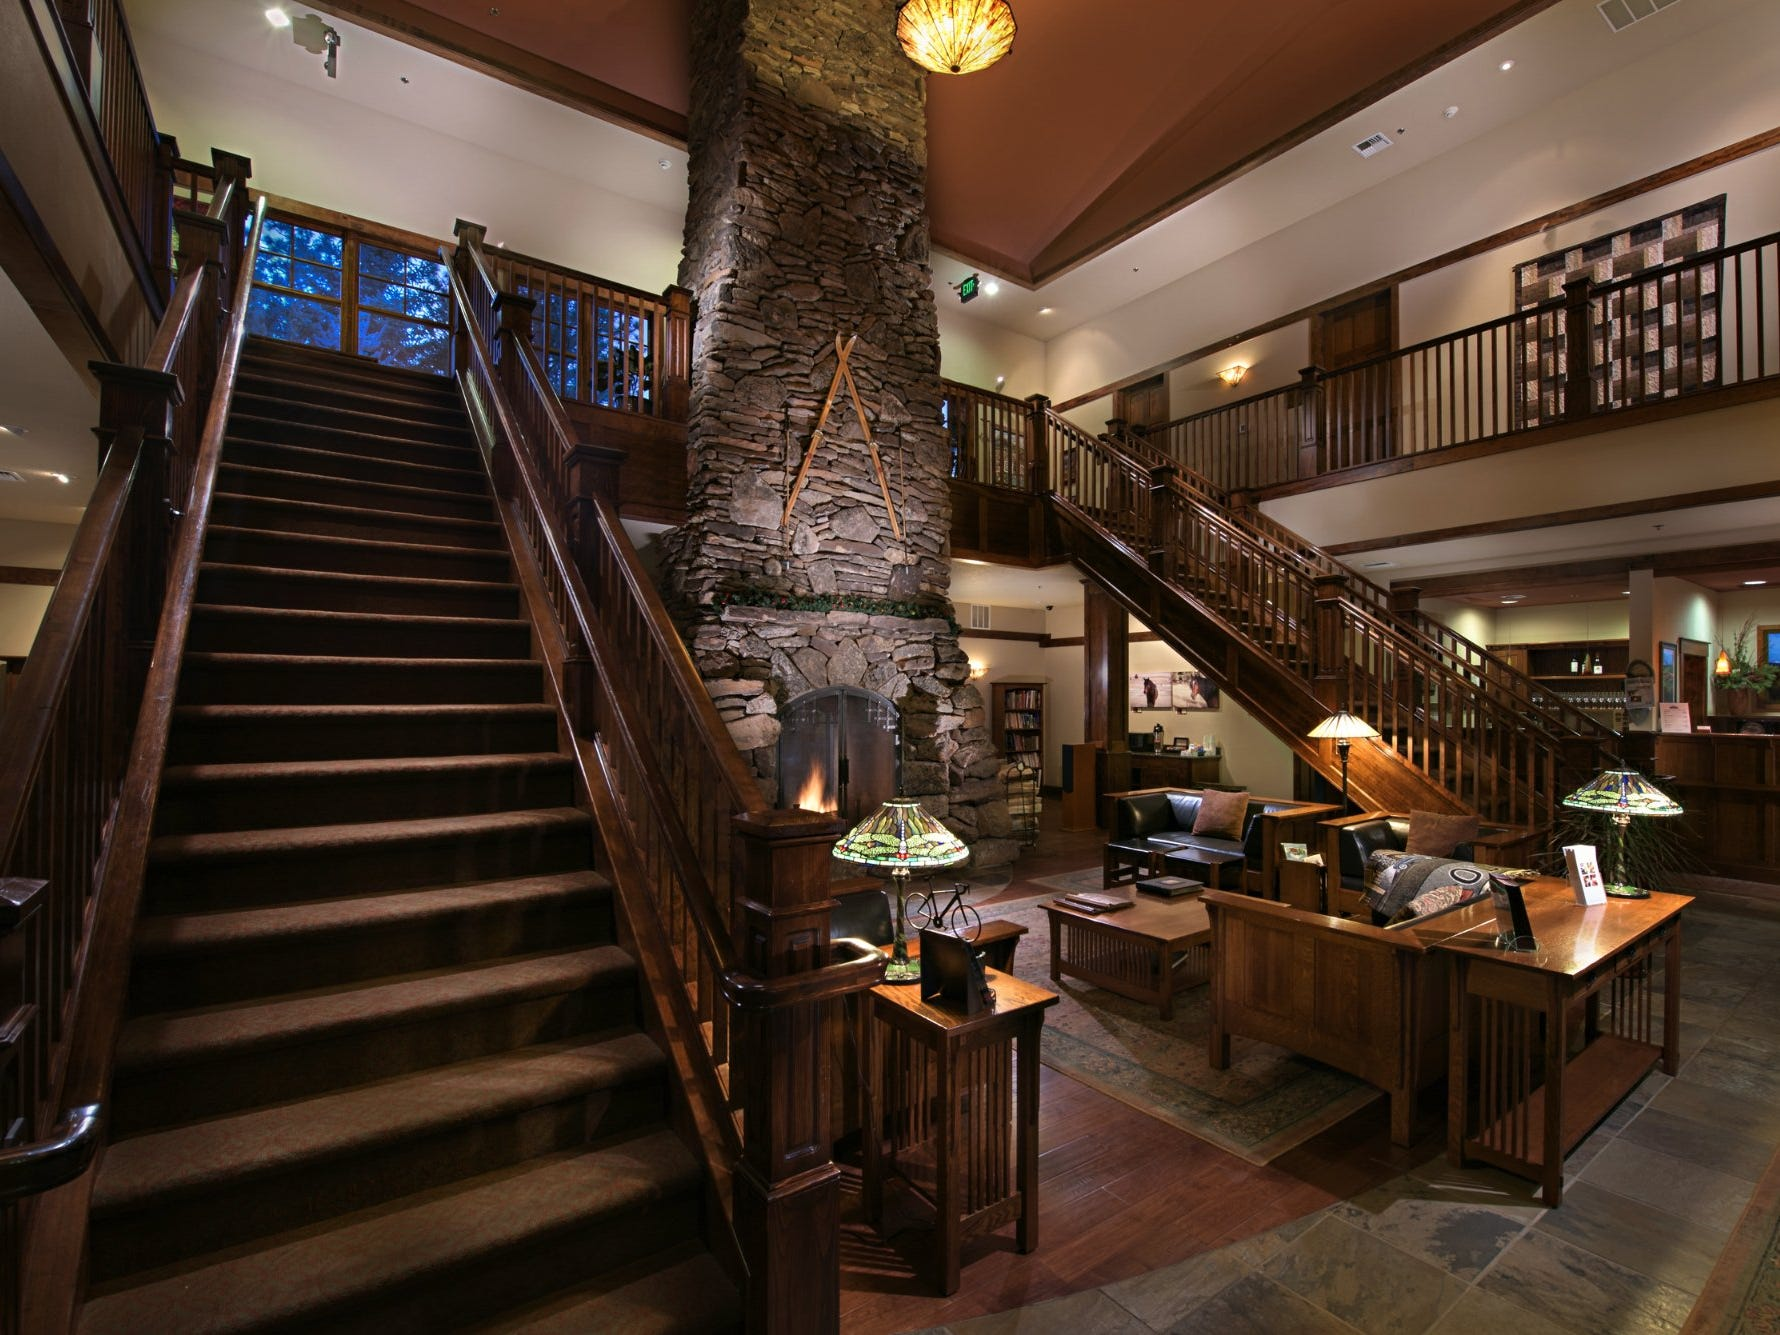 No. 20: FivePine Lodge & Spa in Sisters, Oregon.